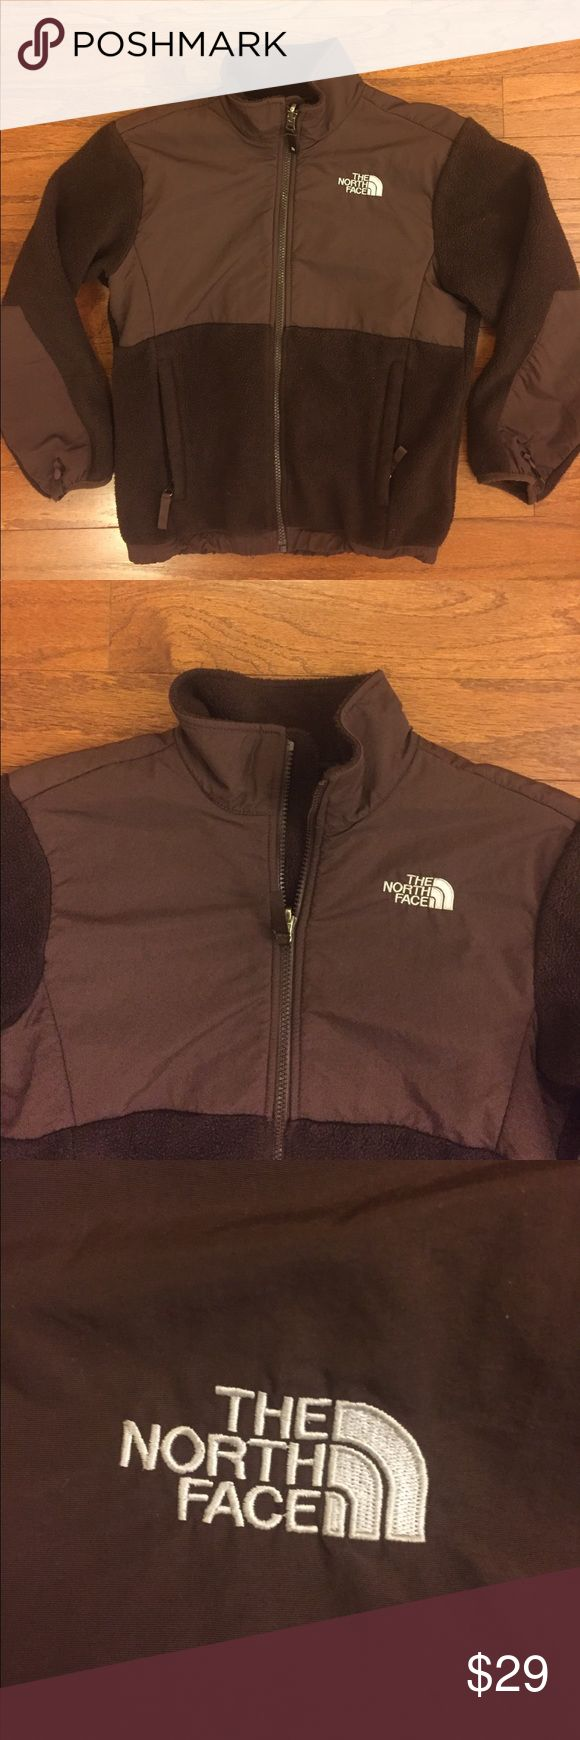 "Girls ""The North Face"" Fleece Zip Up Jacket Good condition with some normal wear, brown color with The North Face logo stitched on the front left chest and back right shoulder, made of 100% polyester and nylon material, girls size medium, measurements are about 20"" pit to pit, 22"" top to bottom and 19 1/2"" shoulder to cuff, Great looking Jacket, Excellent North Face Quality! Bundle for an Extra Discount! The North Face Jackets & Coats"